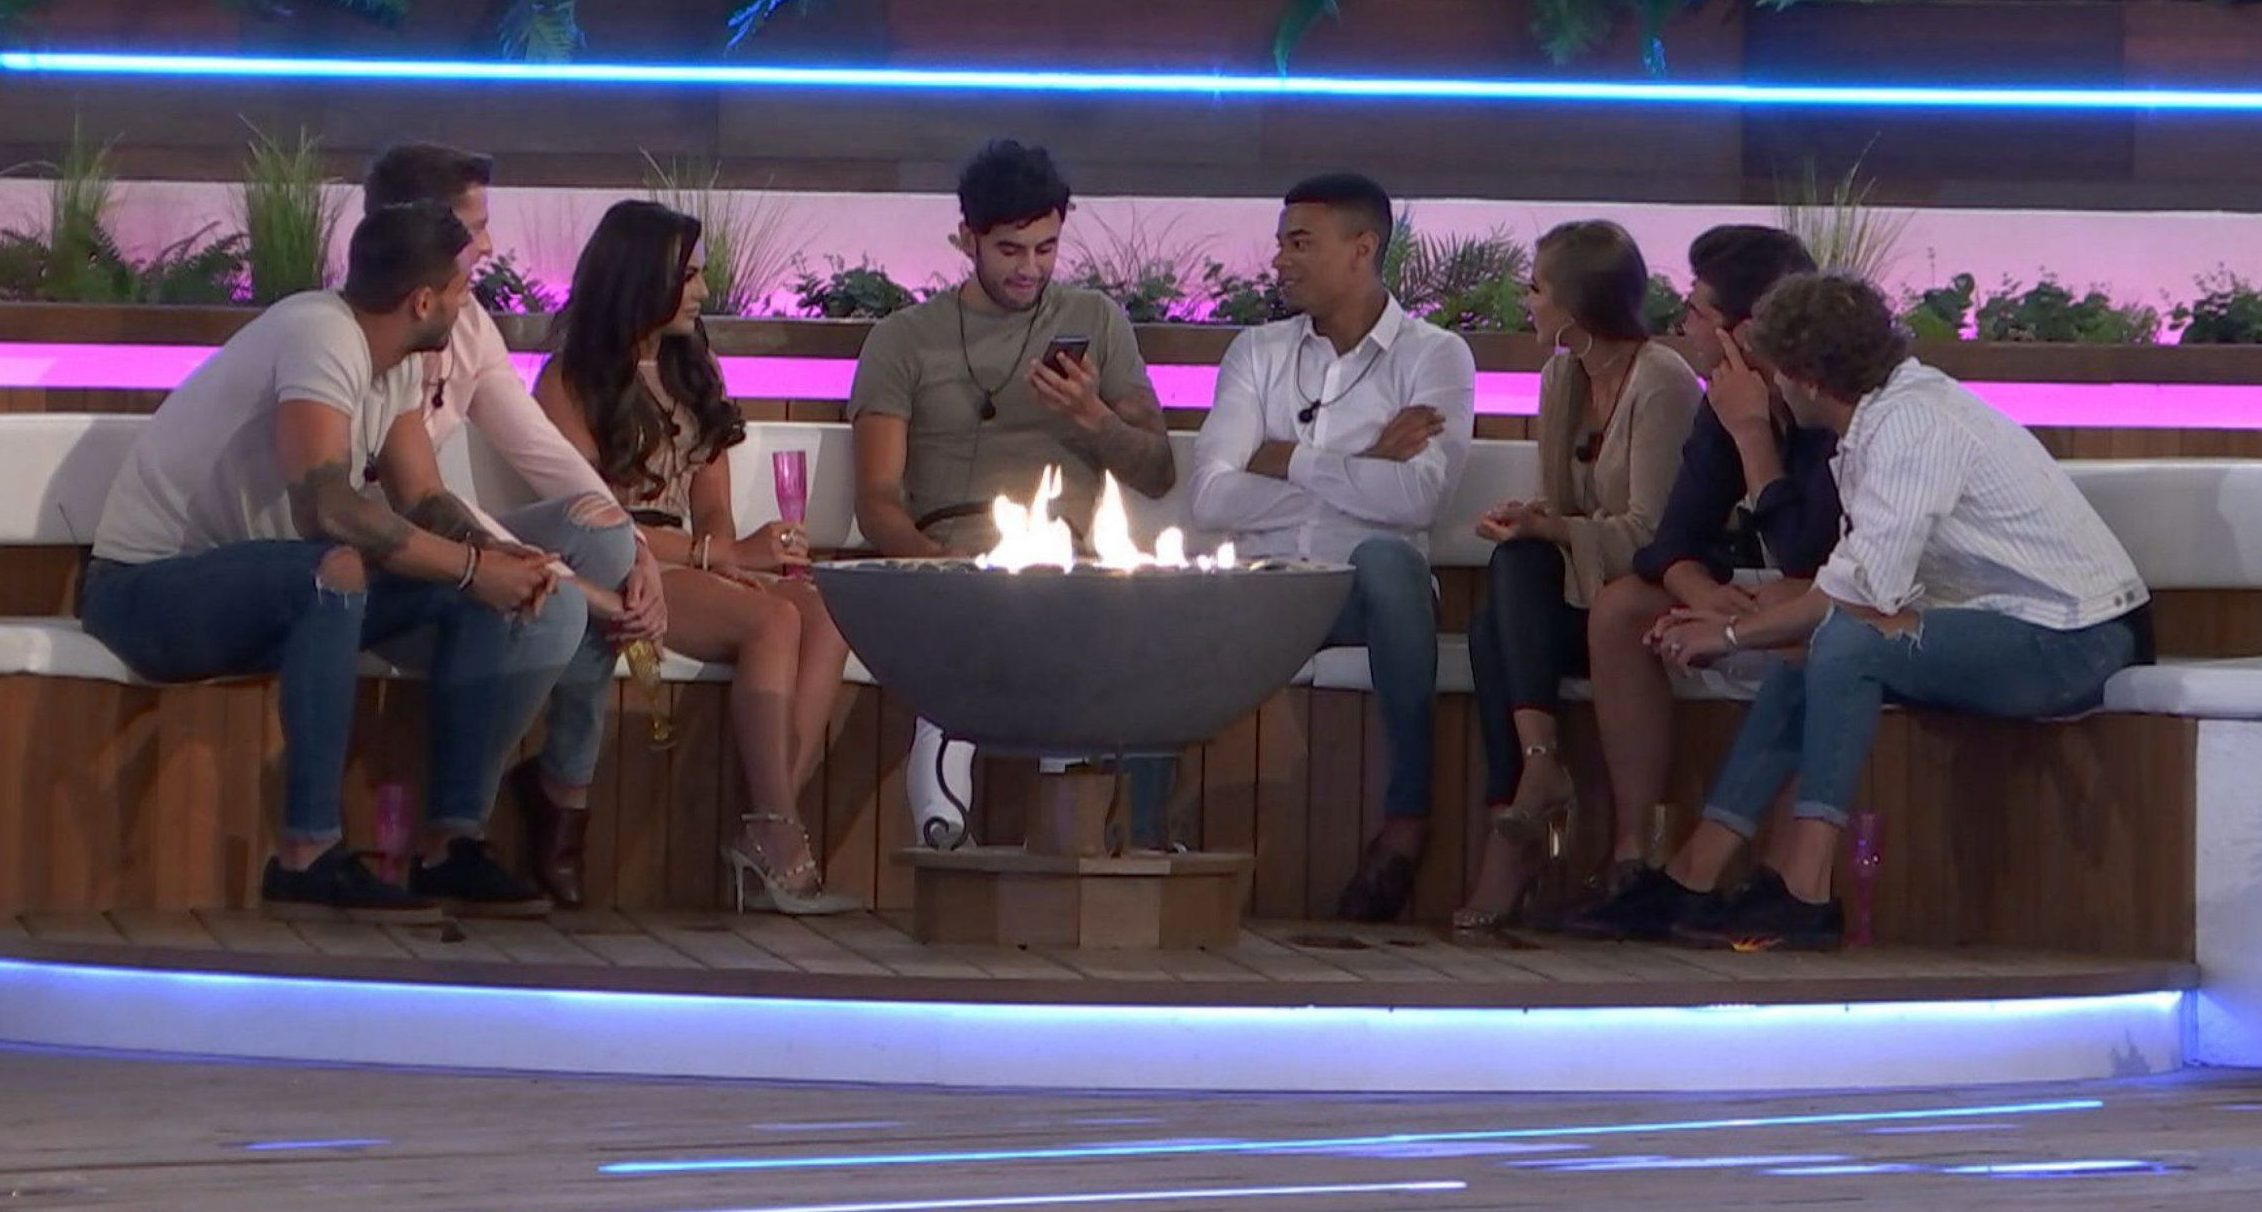 Editorial Use Only. No Merchandising. No Commercial Use. Mandatory Credit: Photo by ITV/REX/Shutterstock (9704672t) Rosie Williams and Georgia Steel arrive in the villa 'Love Island' TV Show, Series 4, Episode 3, Majorca, Spain - 06 Jun 2018 Suspicions quickly begin to mount amongst the five existing females Dani Dyer, Samira Mighty, Laura Anderson, Kendall Rae-Knight and Hayley Hughes that one of them is soon to get the boot when they learn that their two love rivals are on their way.